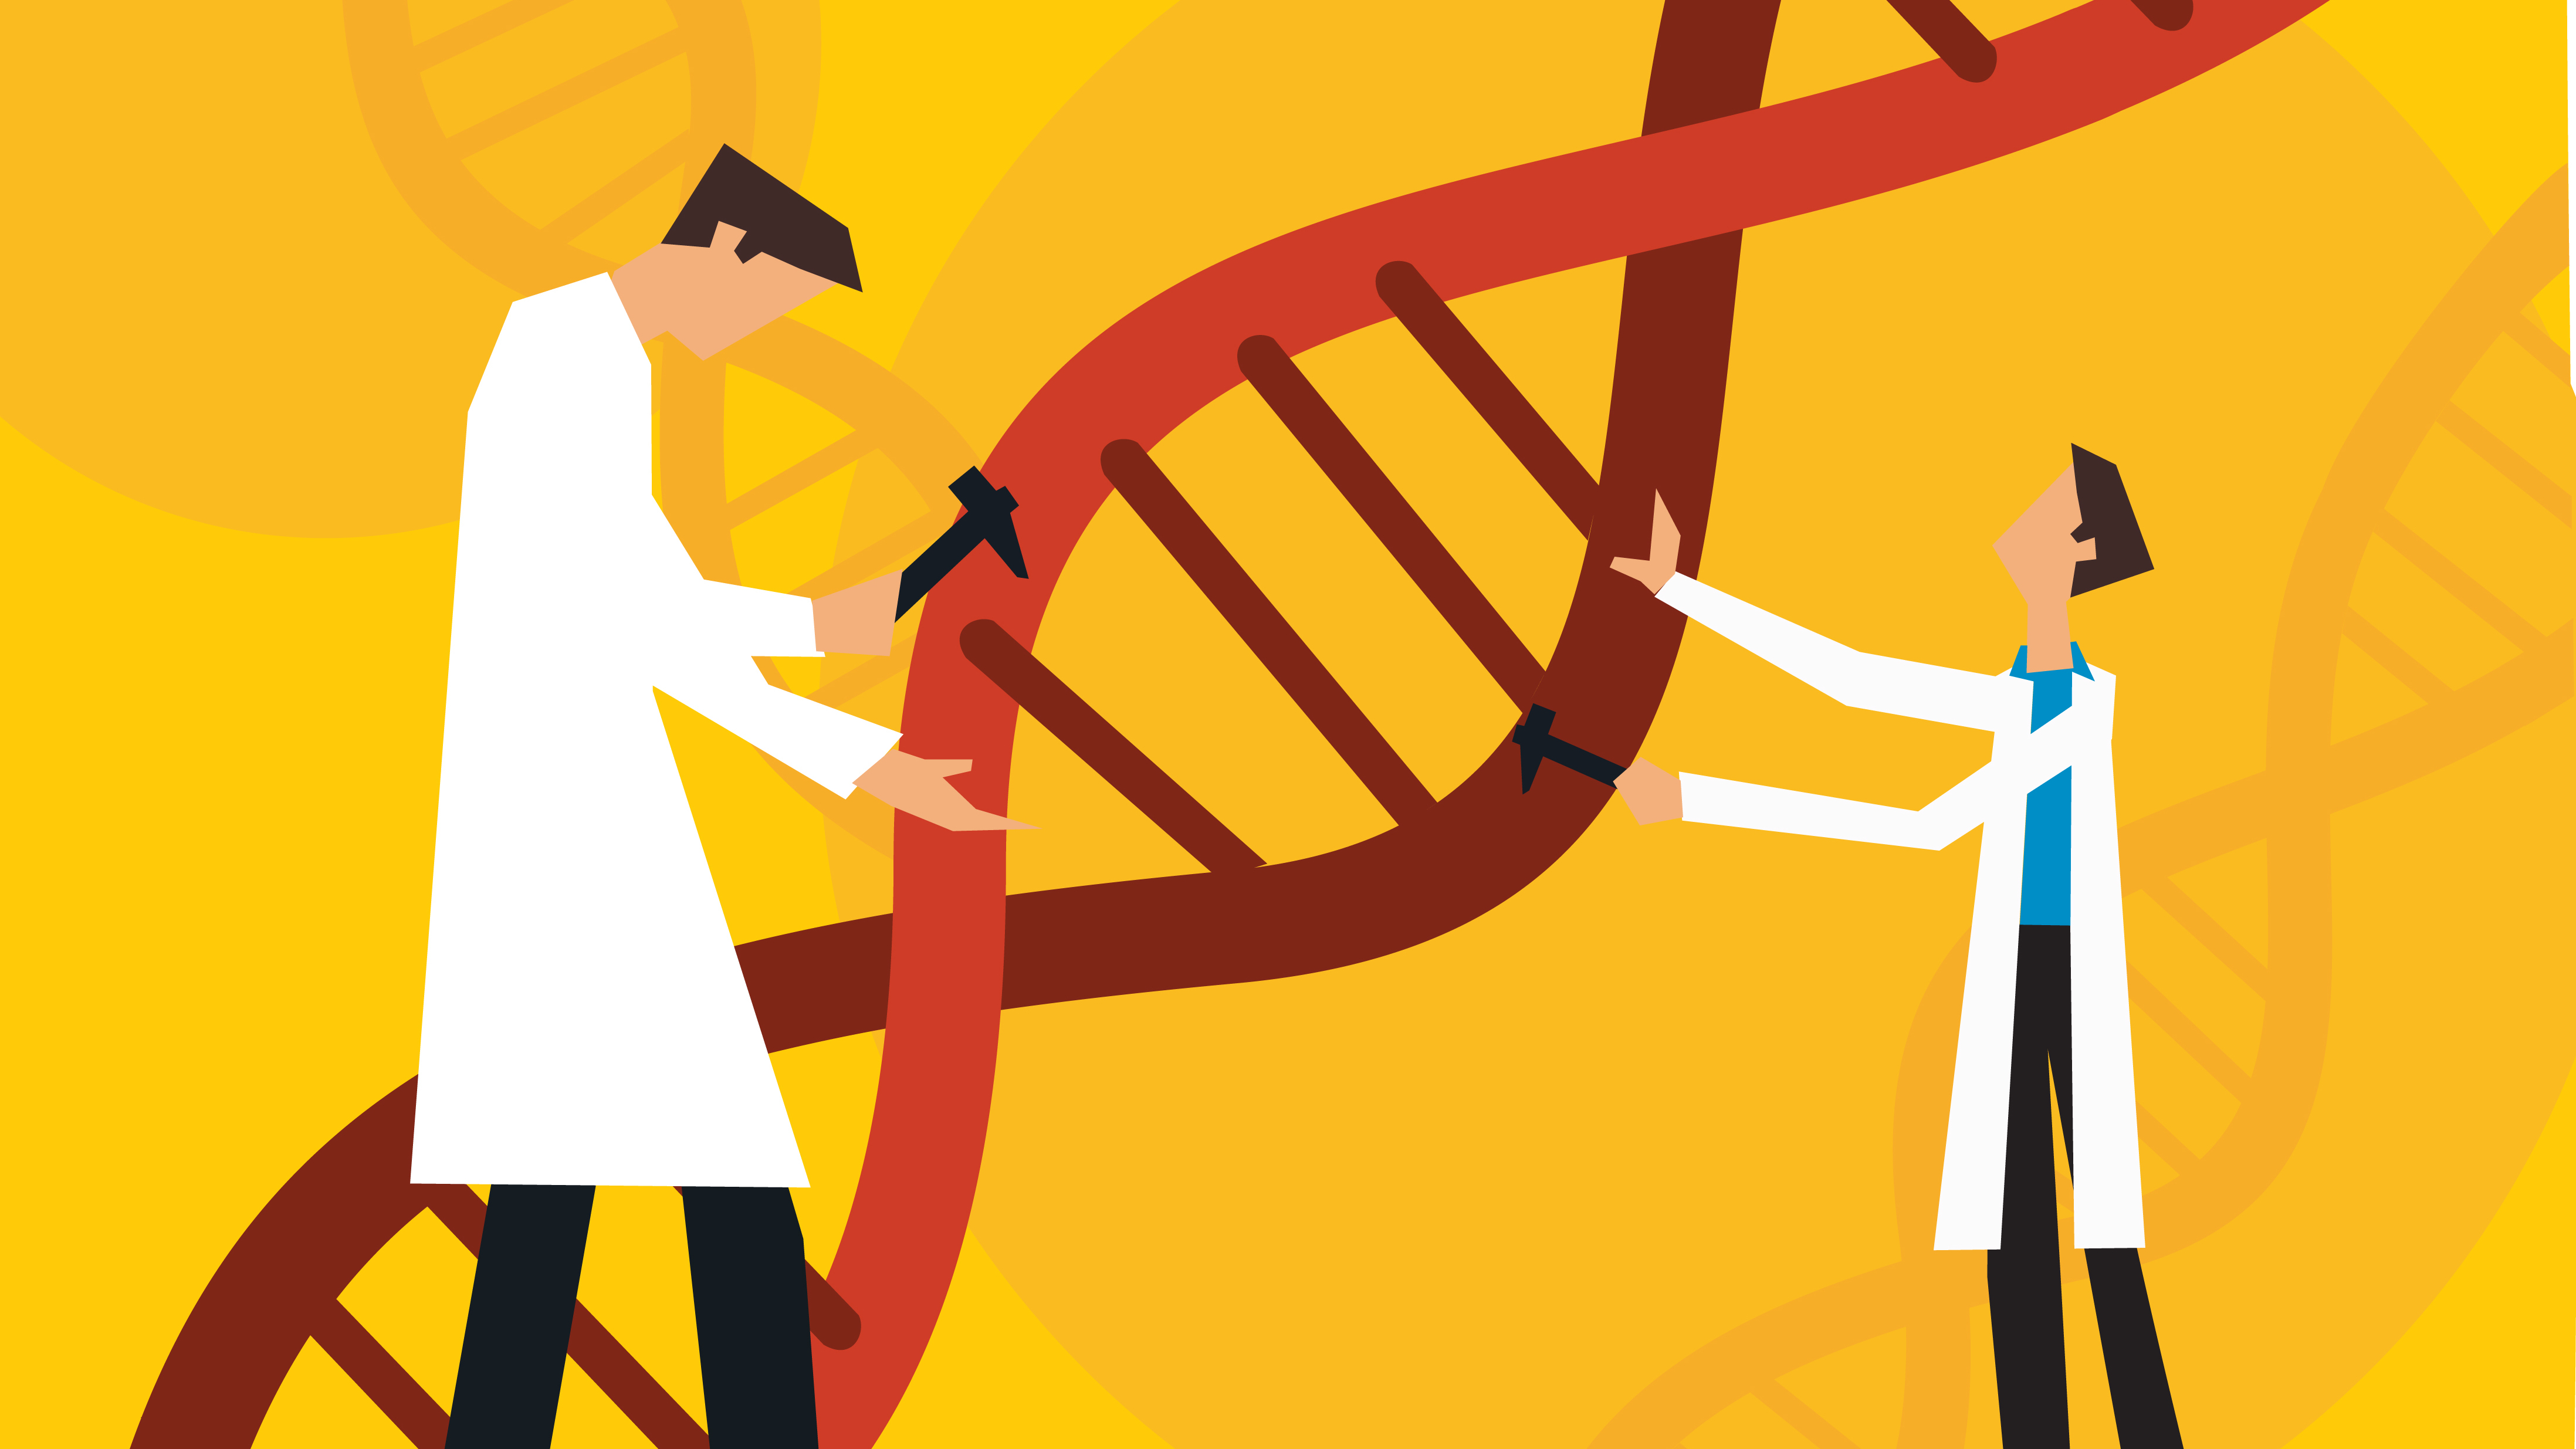 npr.org - People Back Editing Genes To Treat Disease, But Are Wary Of Inheritable Changes